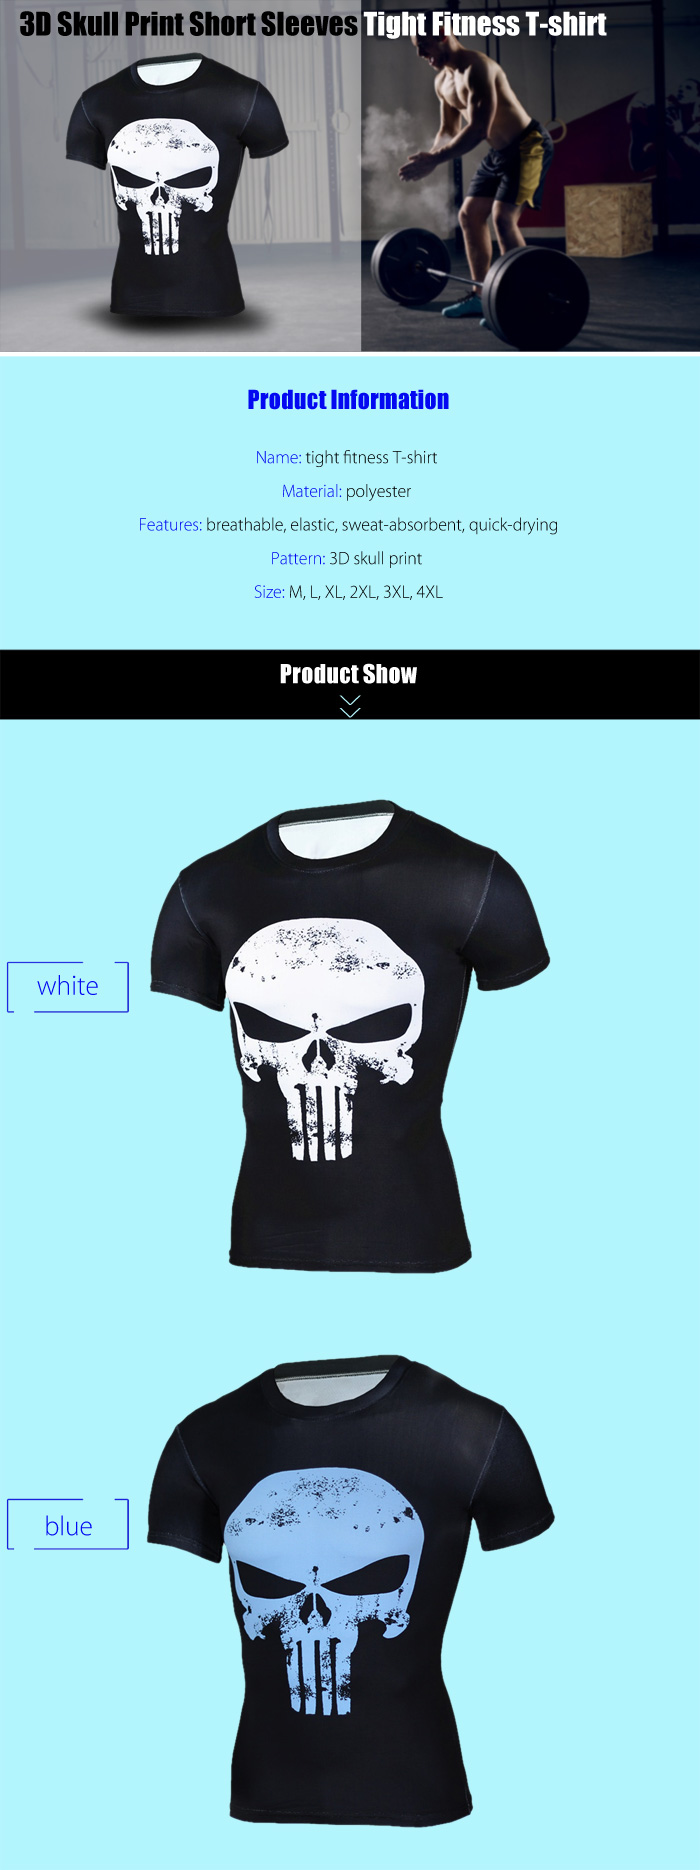 3D Skull Print Tight Fit Short Sleeves T-shirt for Fitness Sports